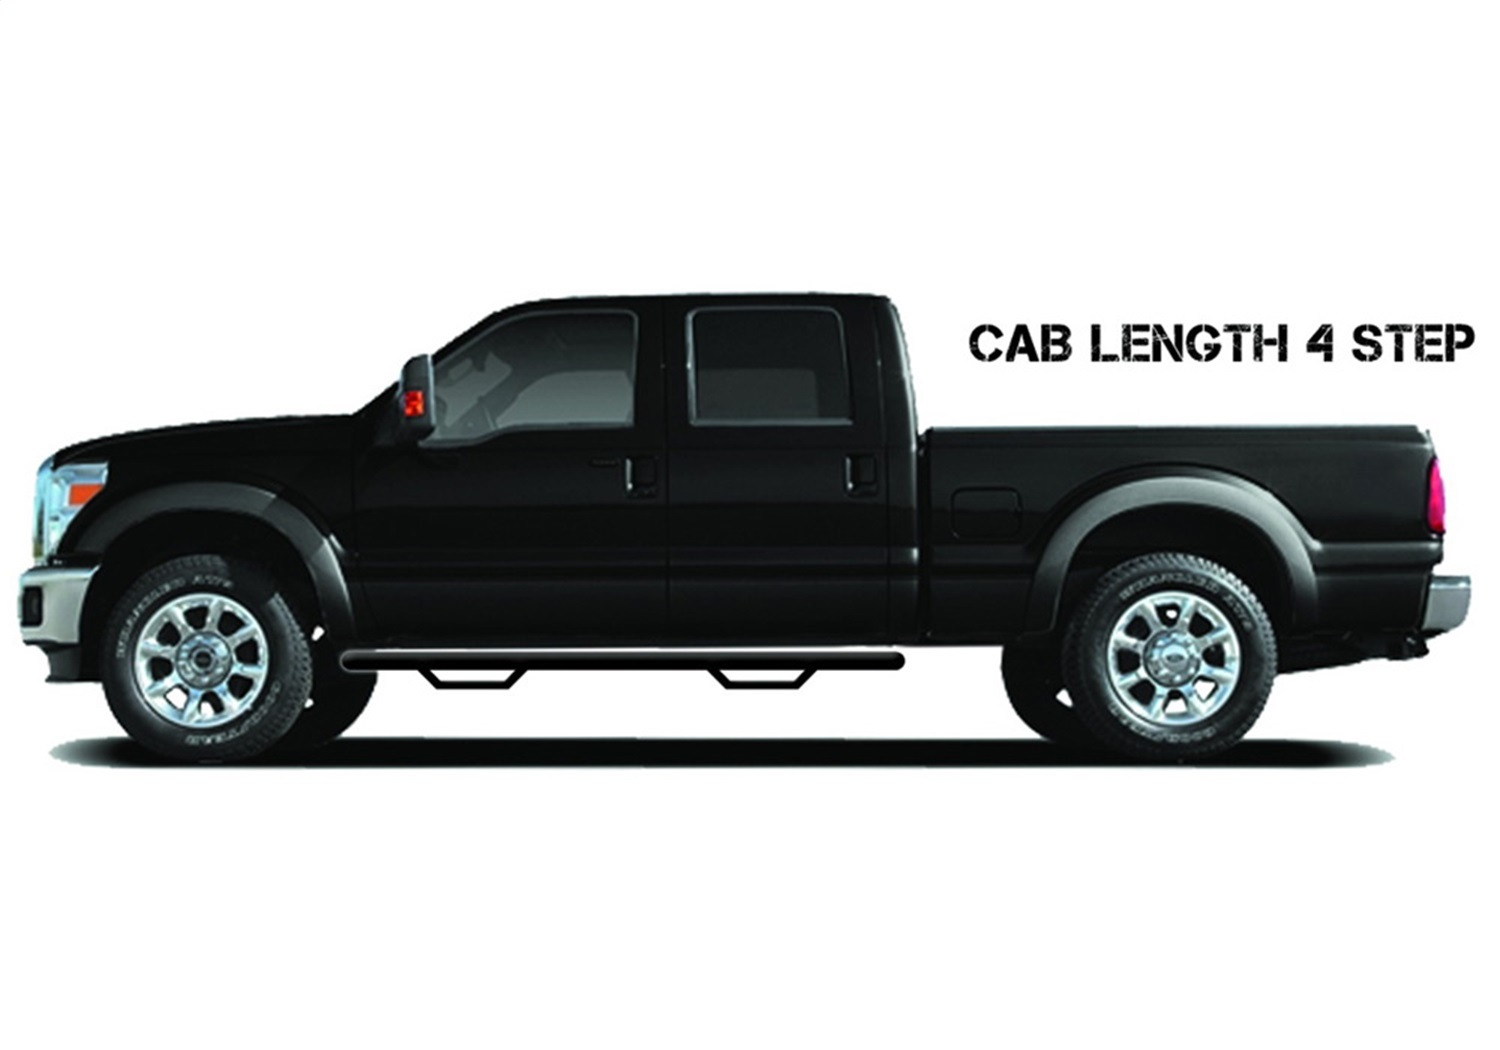 Cab Length Nerf Step Bar, Textured Black, Special Order, 3 in. Tube, 2 Steps Per Side, Sold As Pair, Works w/DEF Tank